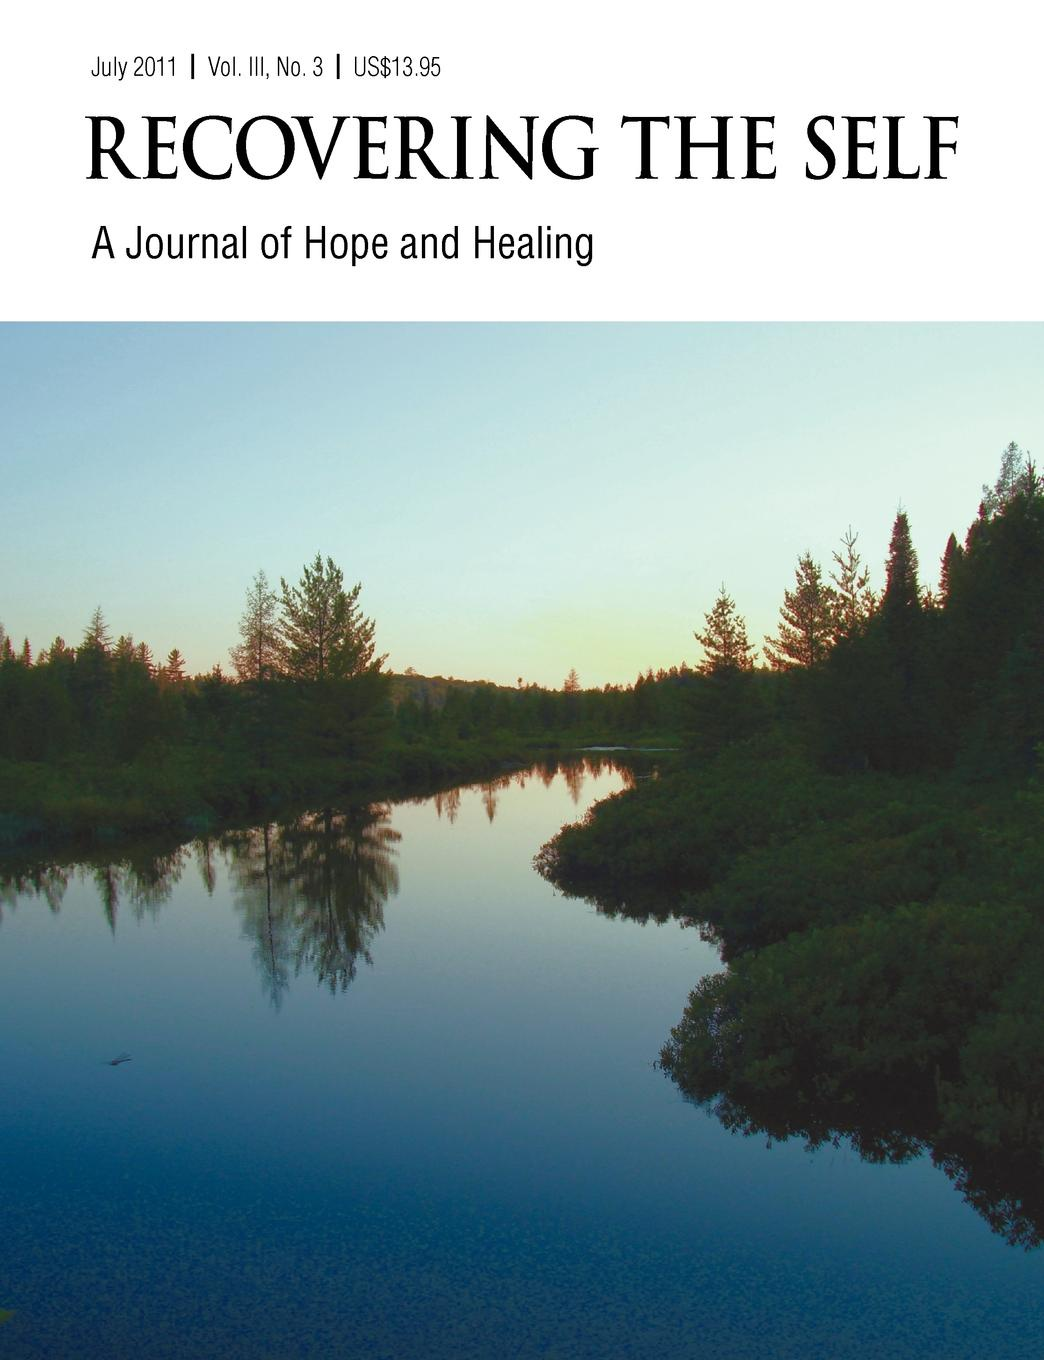 David Roberts Recovering The Self. A Journal of Hope and Healing (Vol. III, No. 3) -- Focus on Health recovering the self